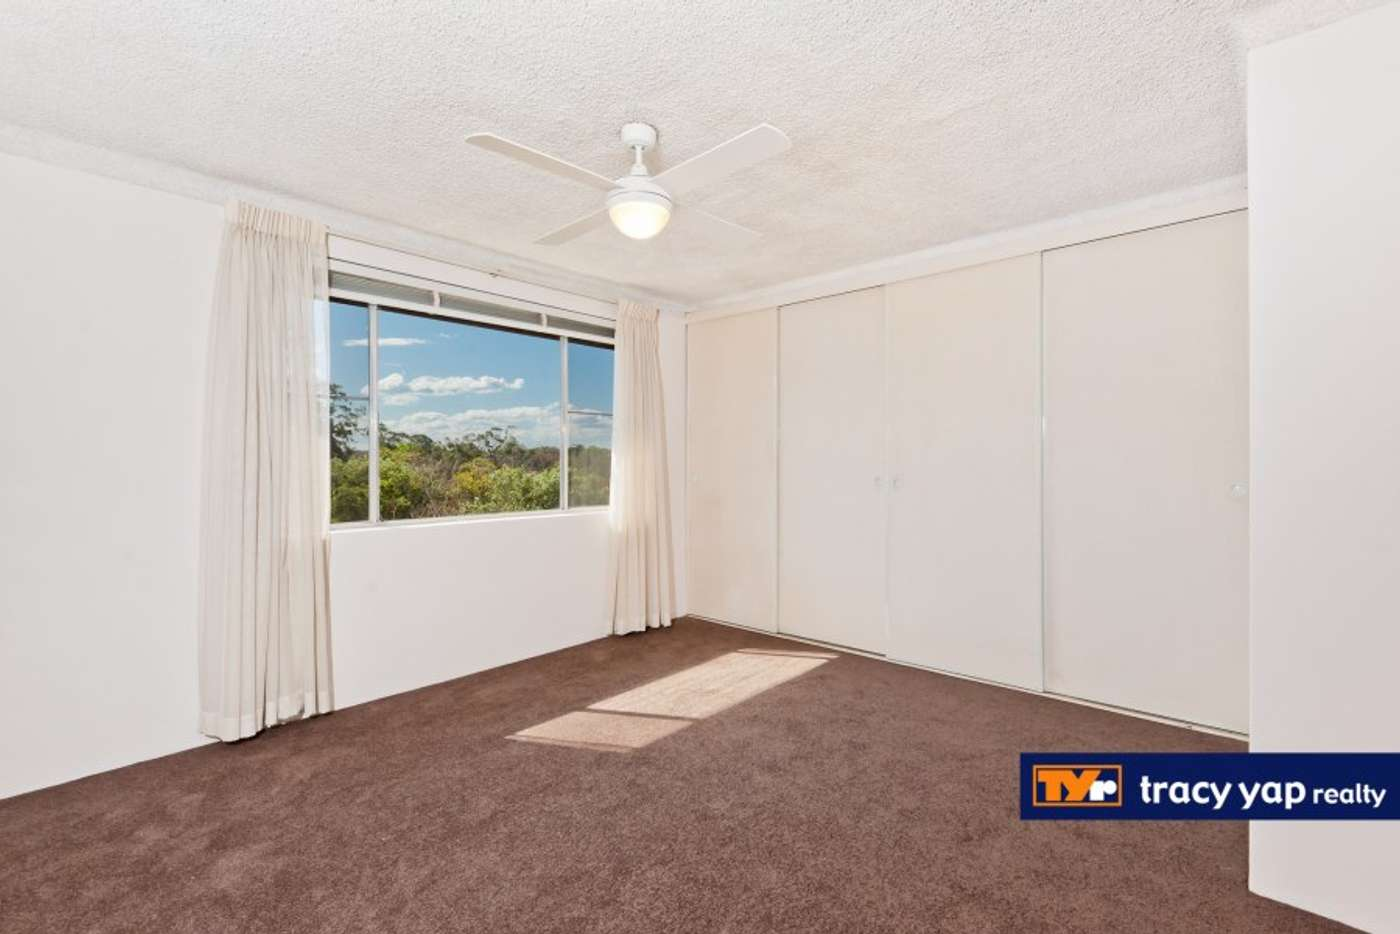 Fifth view of Homely apartment listing, 3/14 Essex Street, Epping NSW 2121